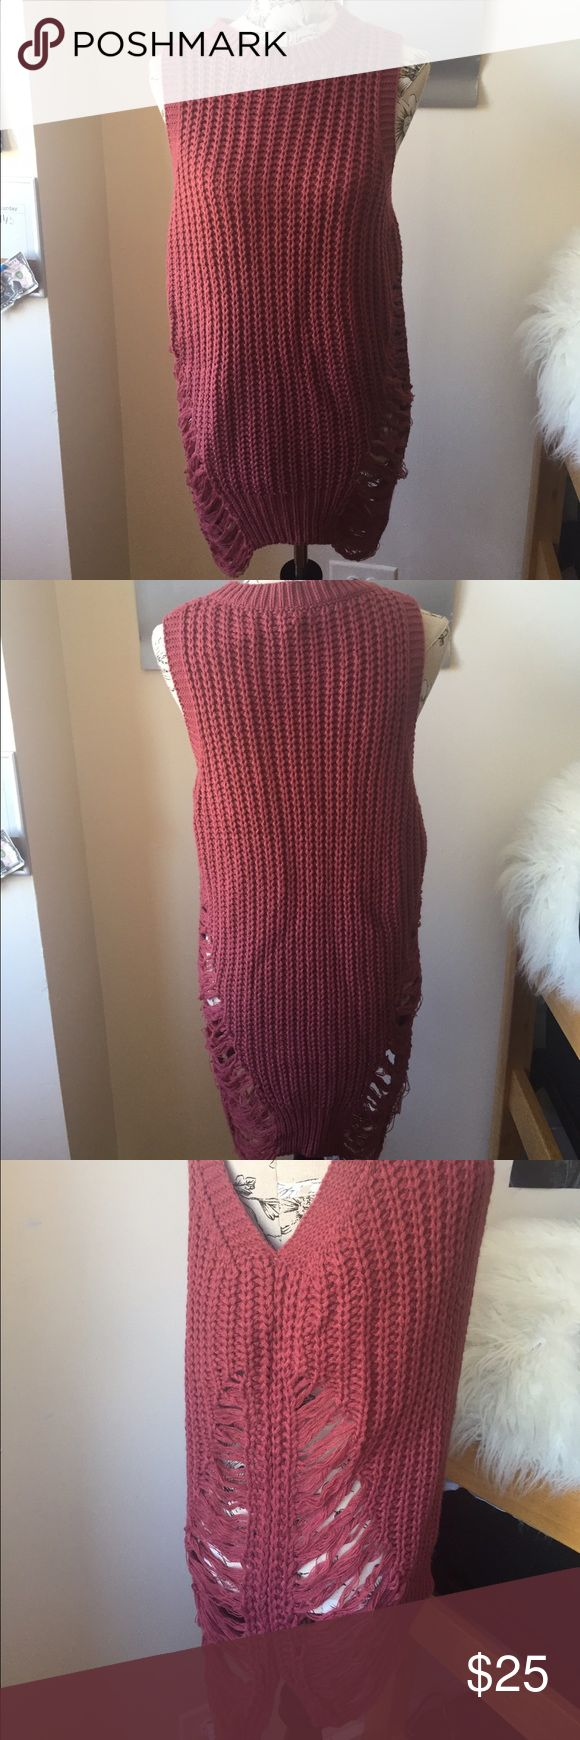 Tank top sweater Red long sleeveless sweater. Has shredded accents on side. Super soft material!! Urban Outfitters Sweaters